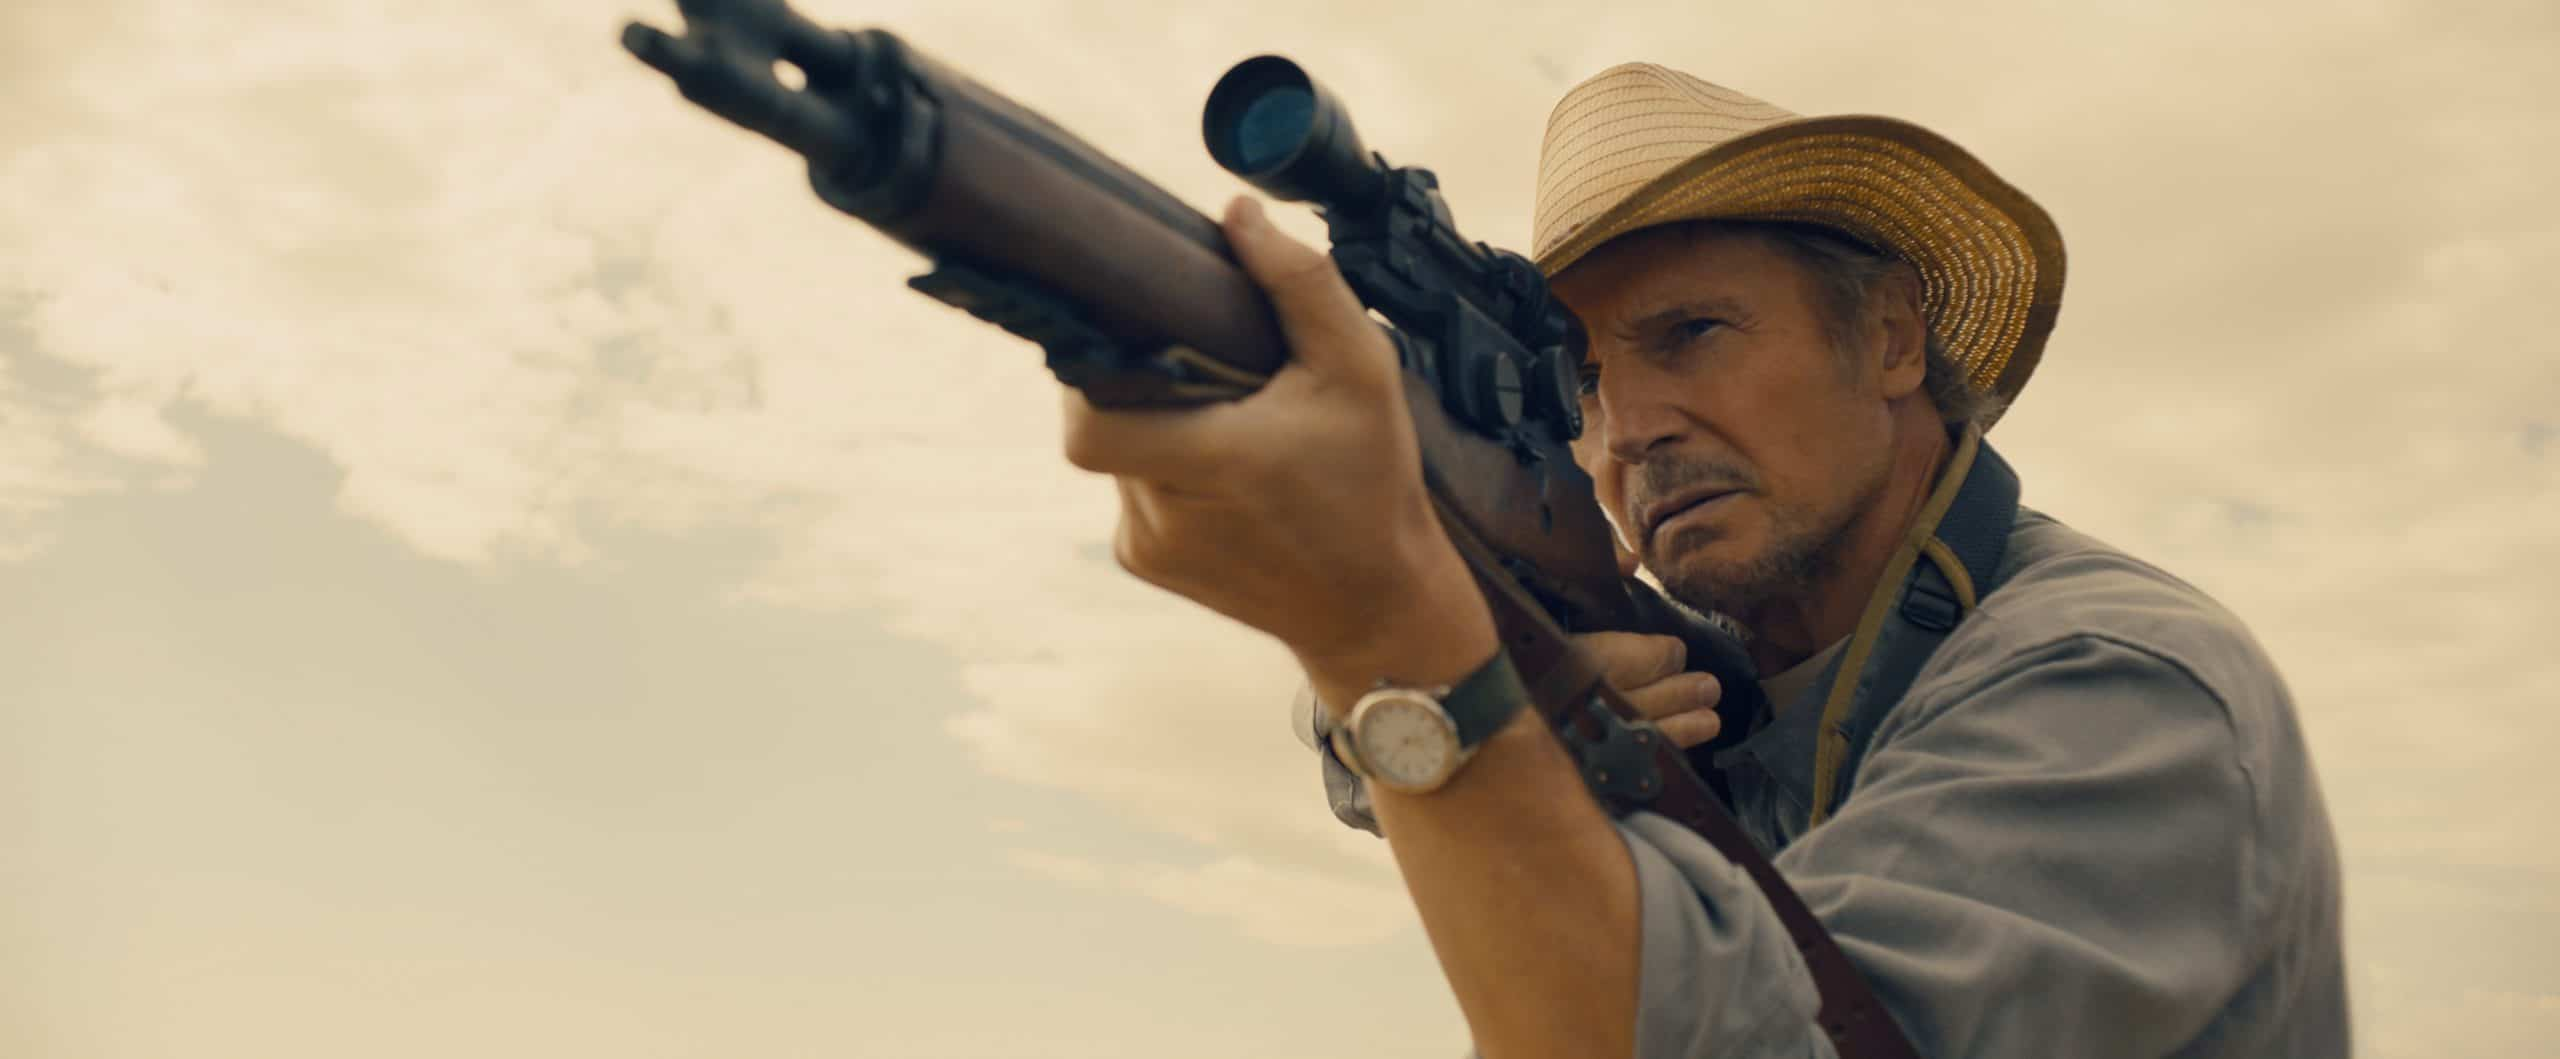 Liam Neeson Kicks Ass In The Marksman, Out Soon On Video